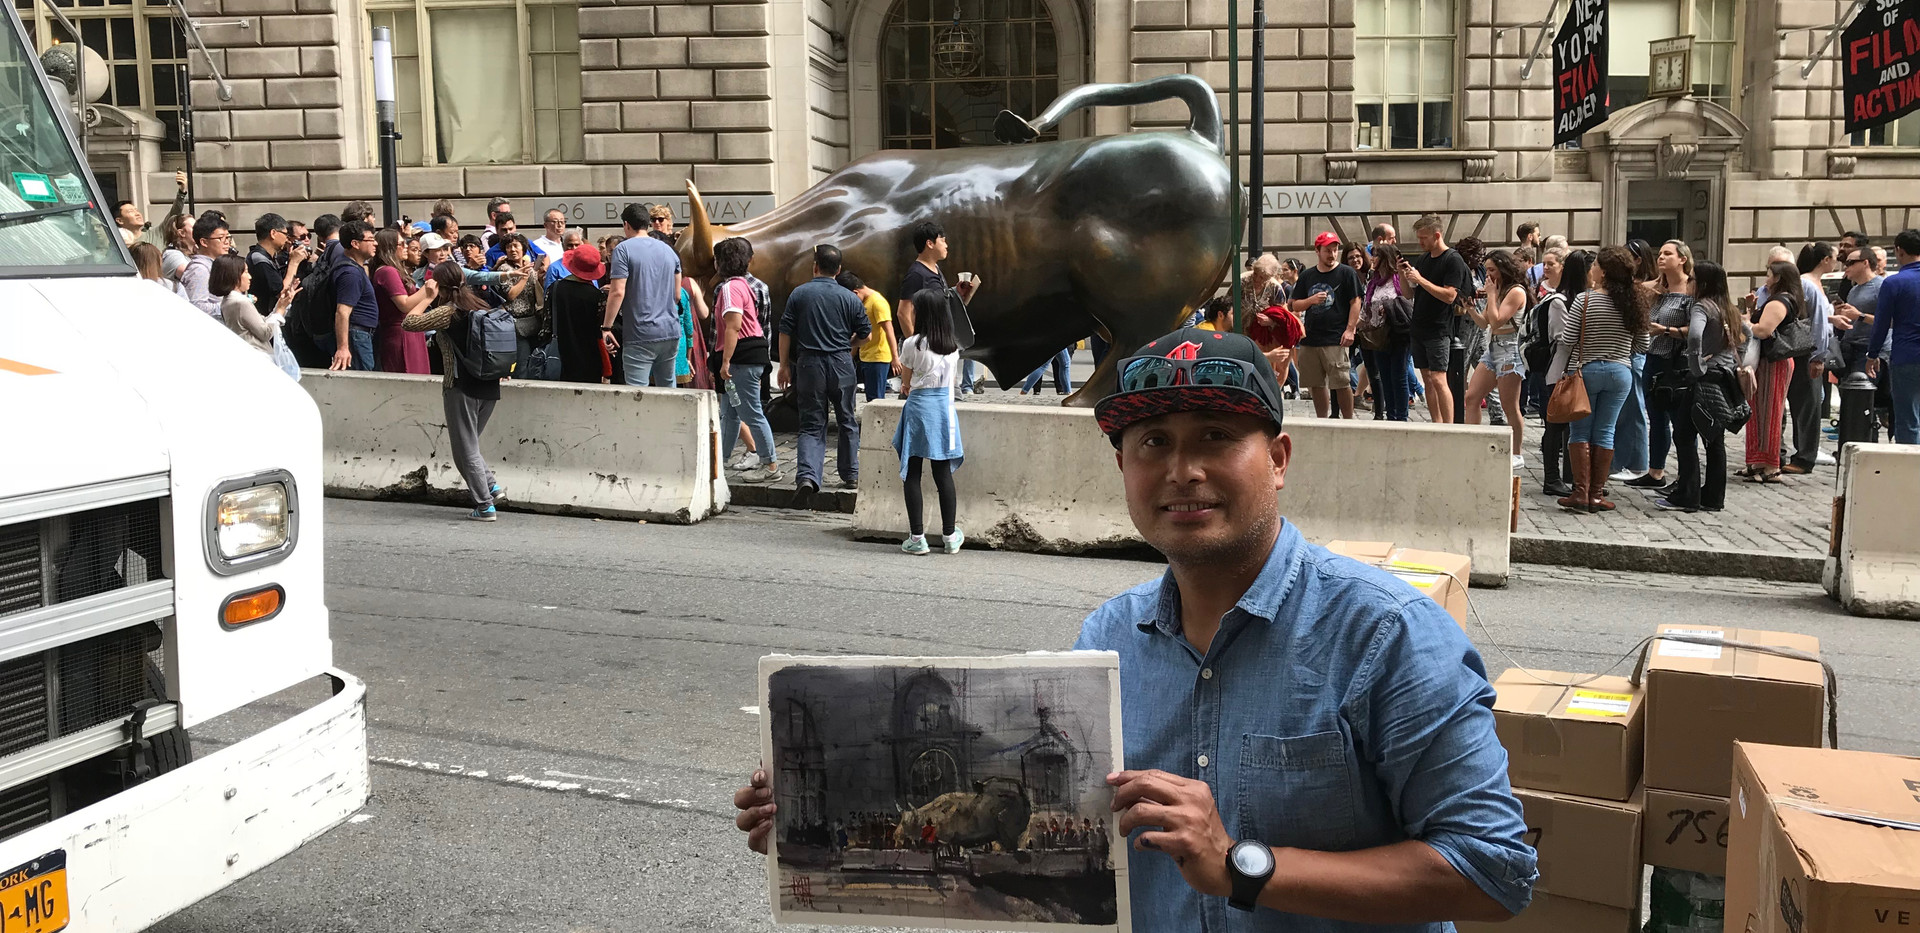 I manage to paint even huge crowd covering the statue.